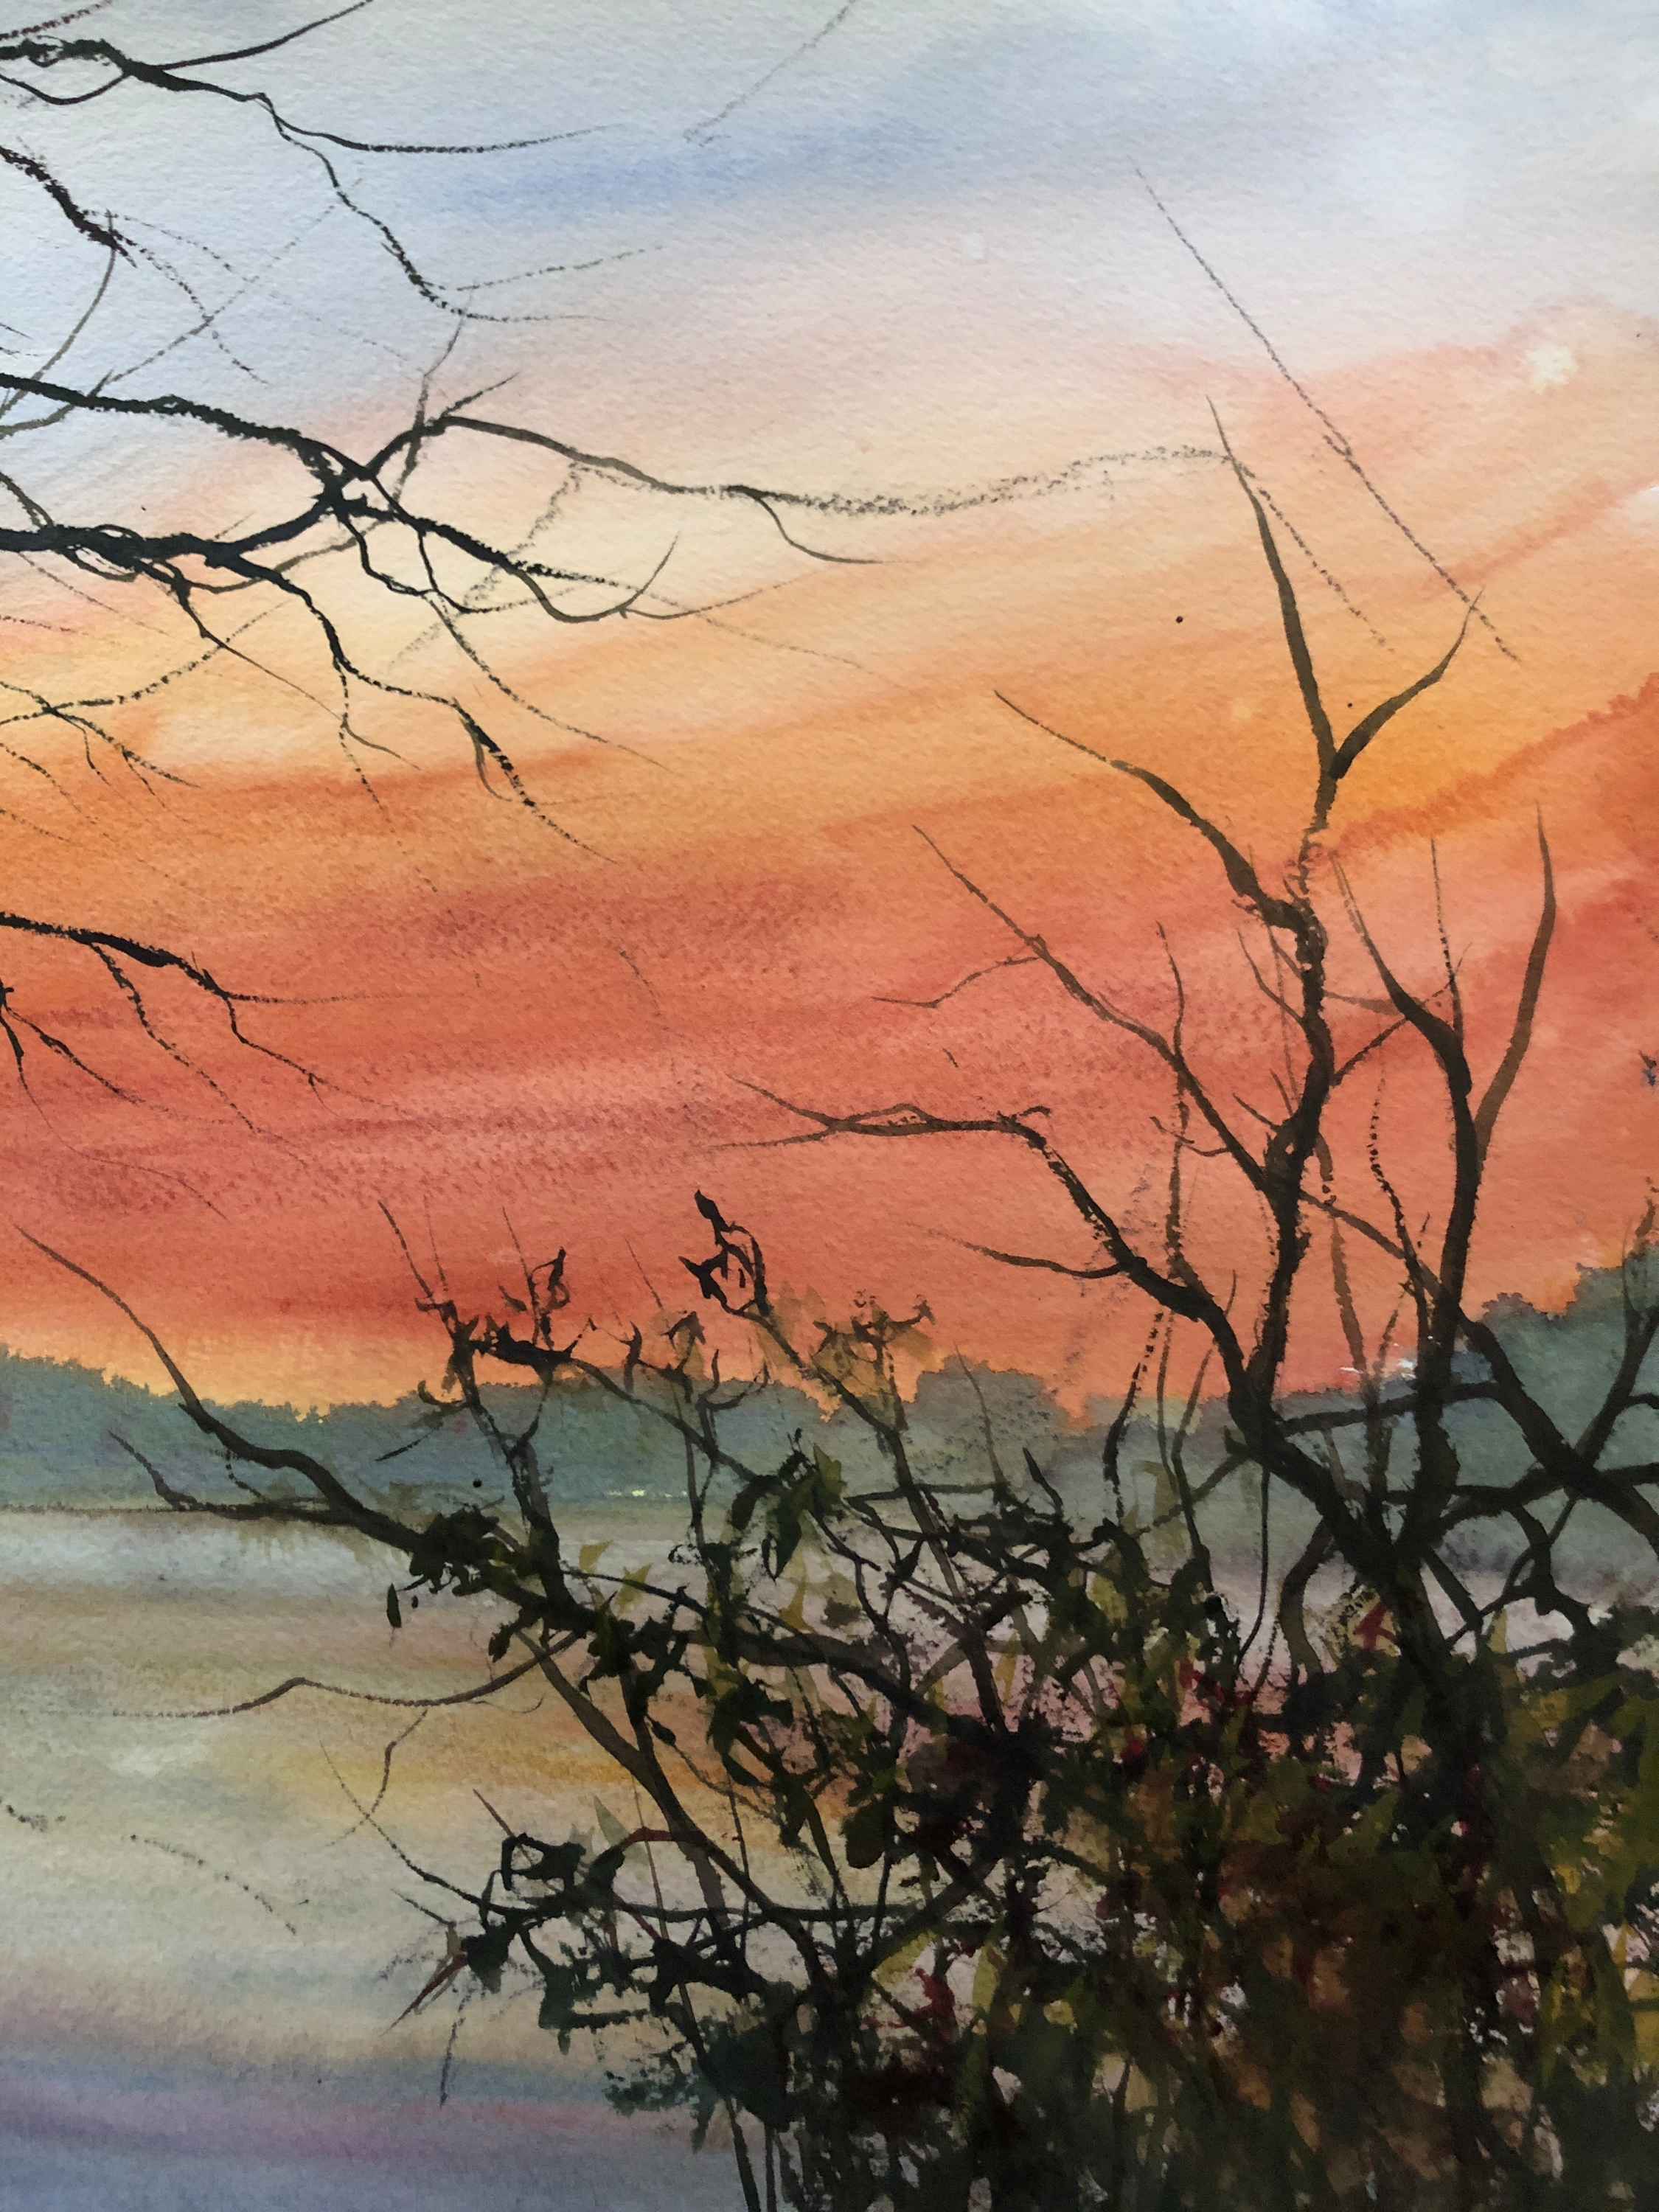 Sunset wilde lake watercolor 14x11 2019 wu7pzr